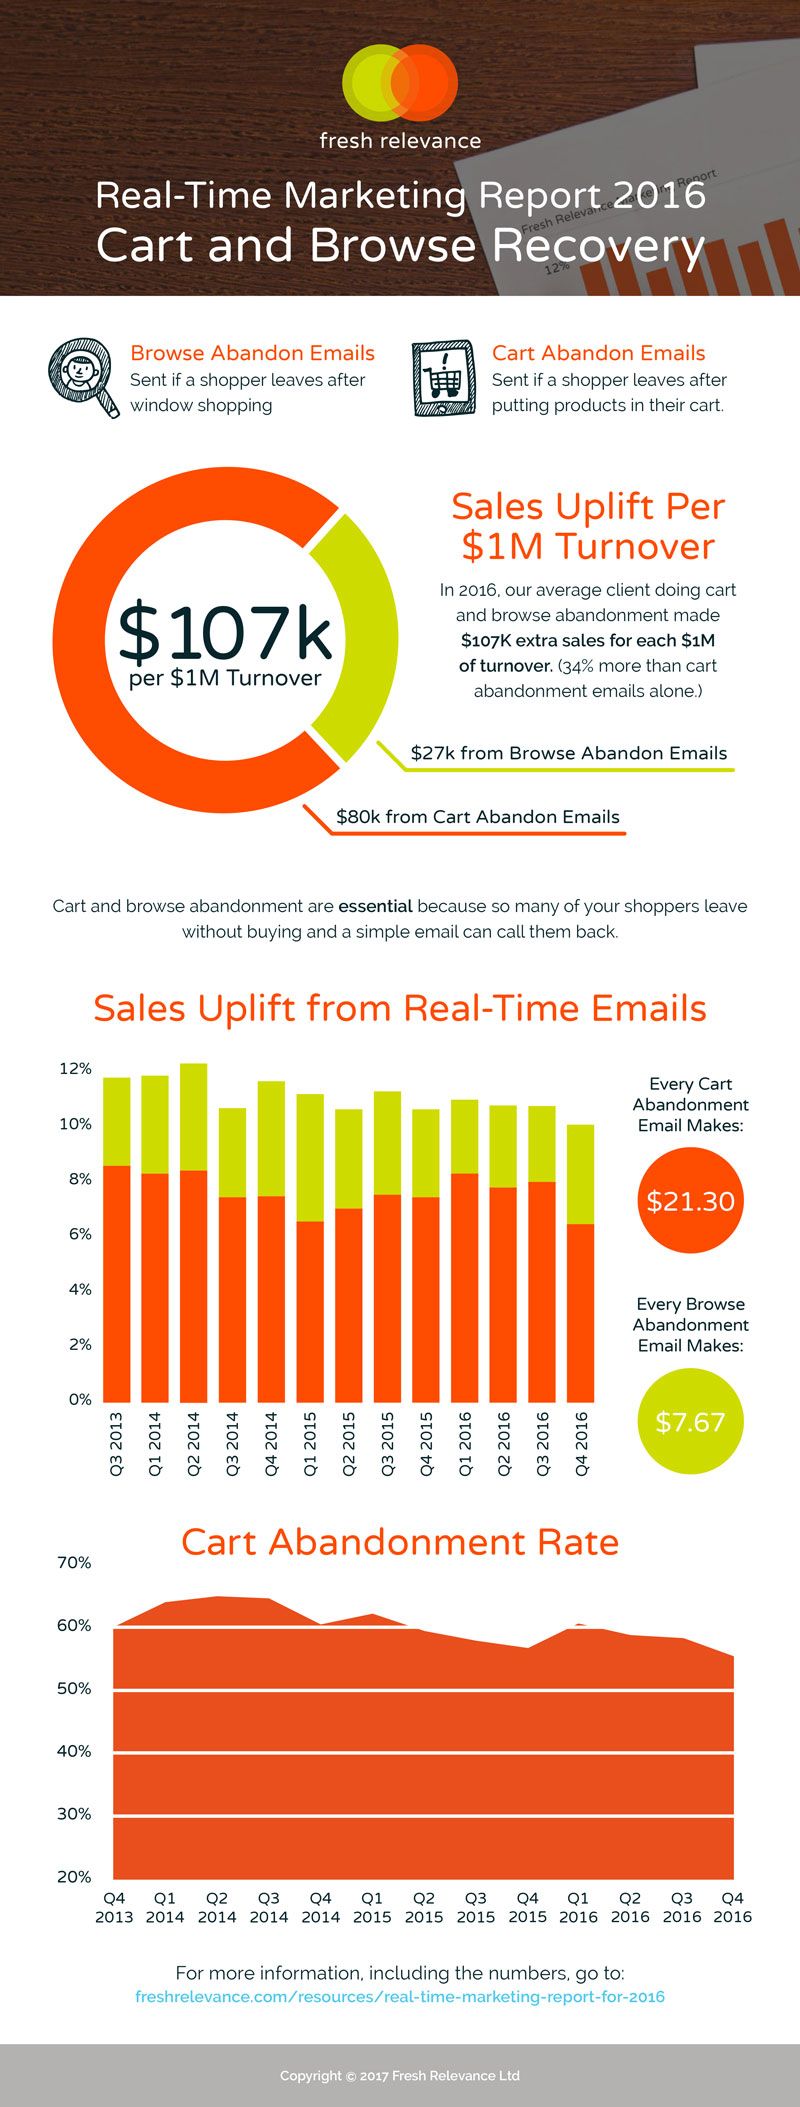 Real-time marketing report - 2016